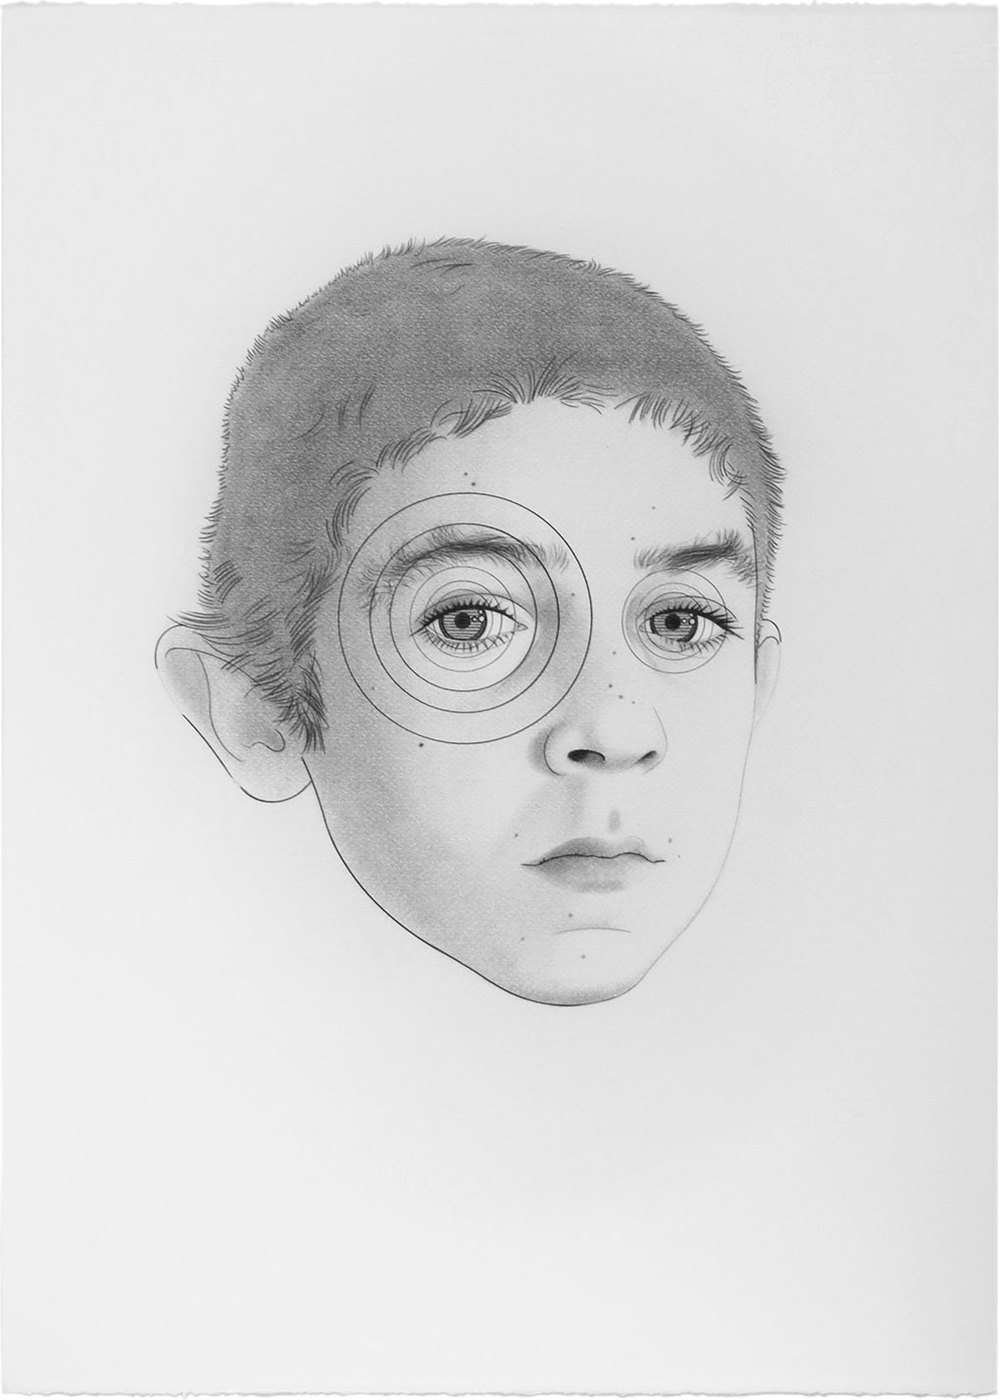 Jodie Foster as Jacobo, 2012 Graphite / paper, 70 x 50 cm